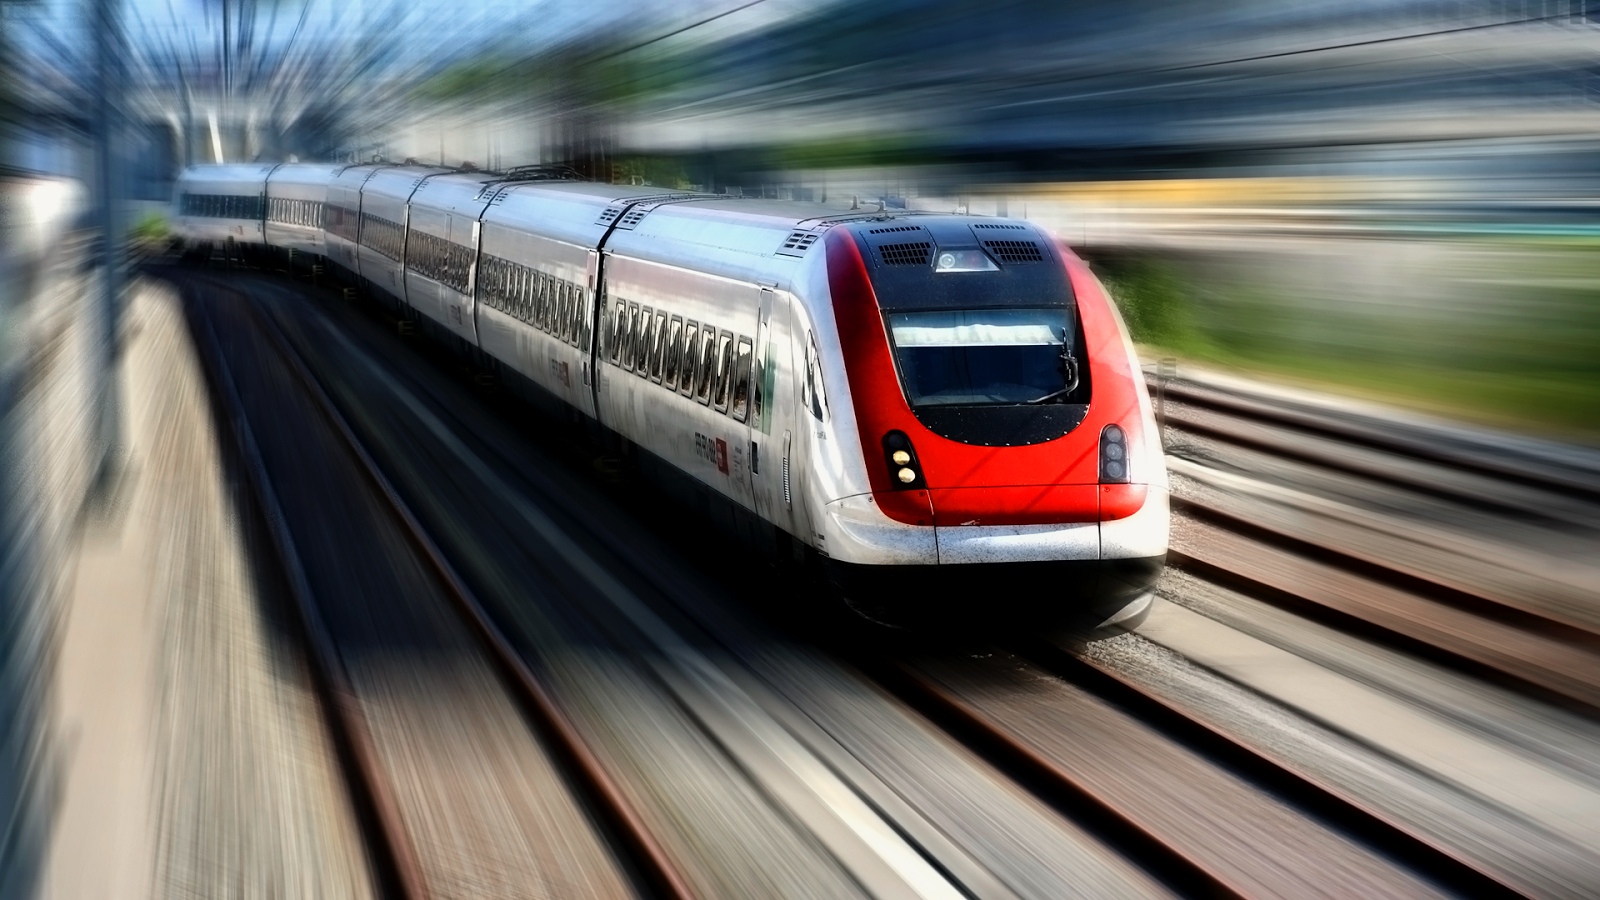 The fastest train in the world with a top speed of 486.1 km/h is China's CRH380A.